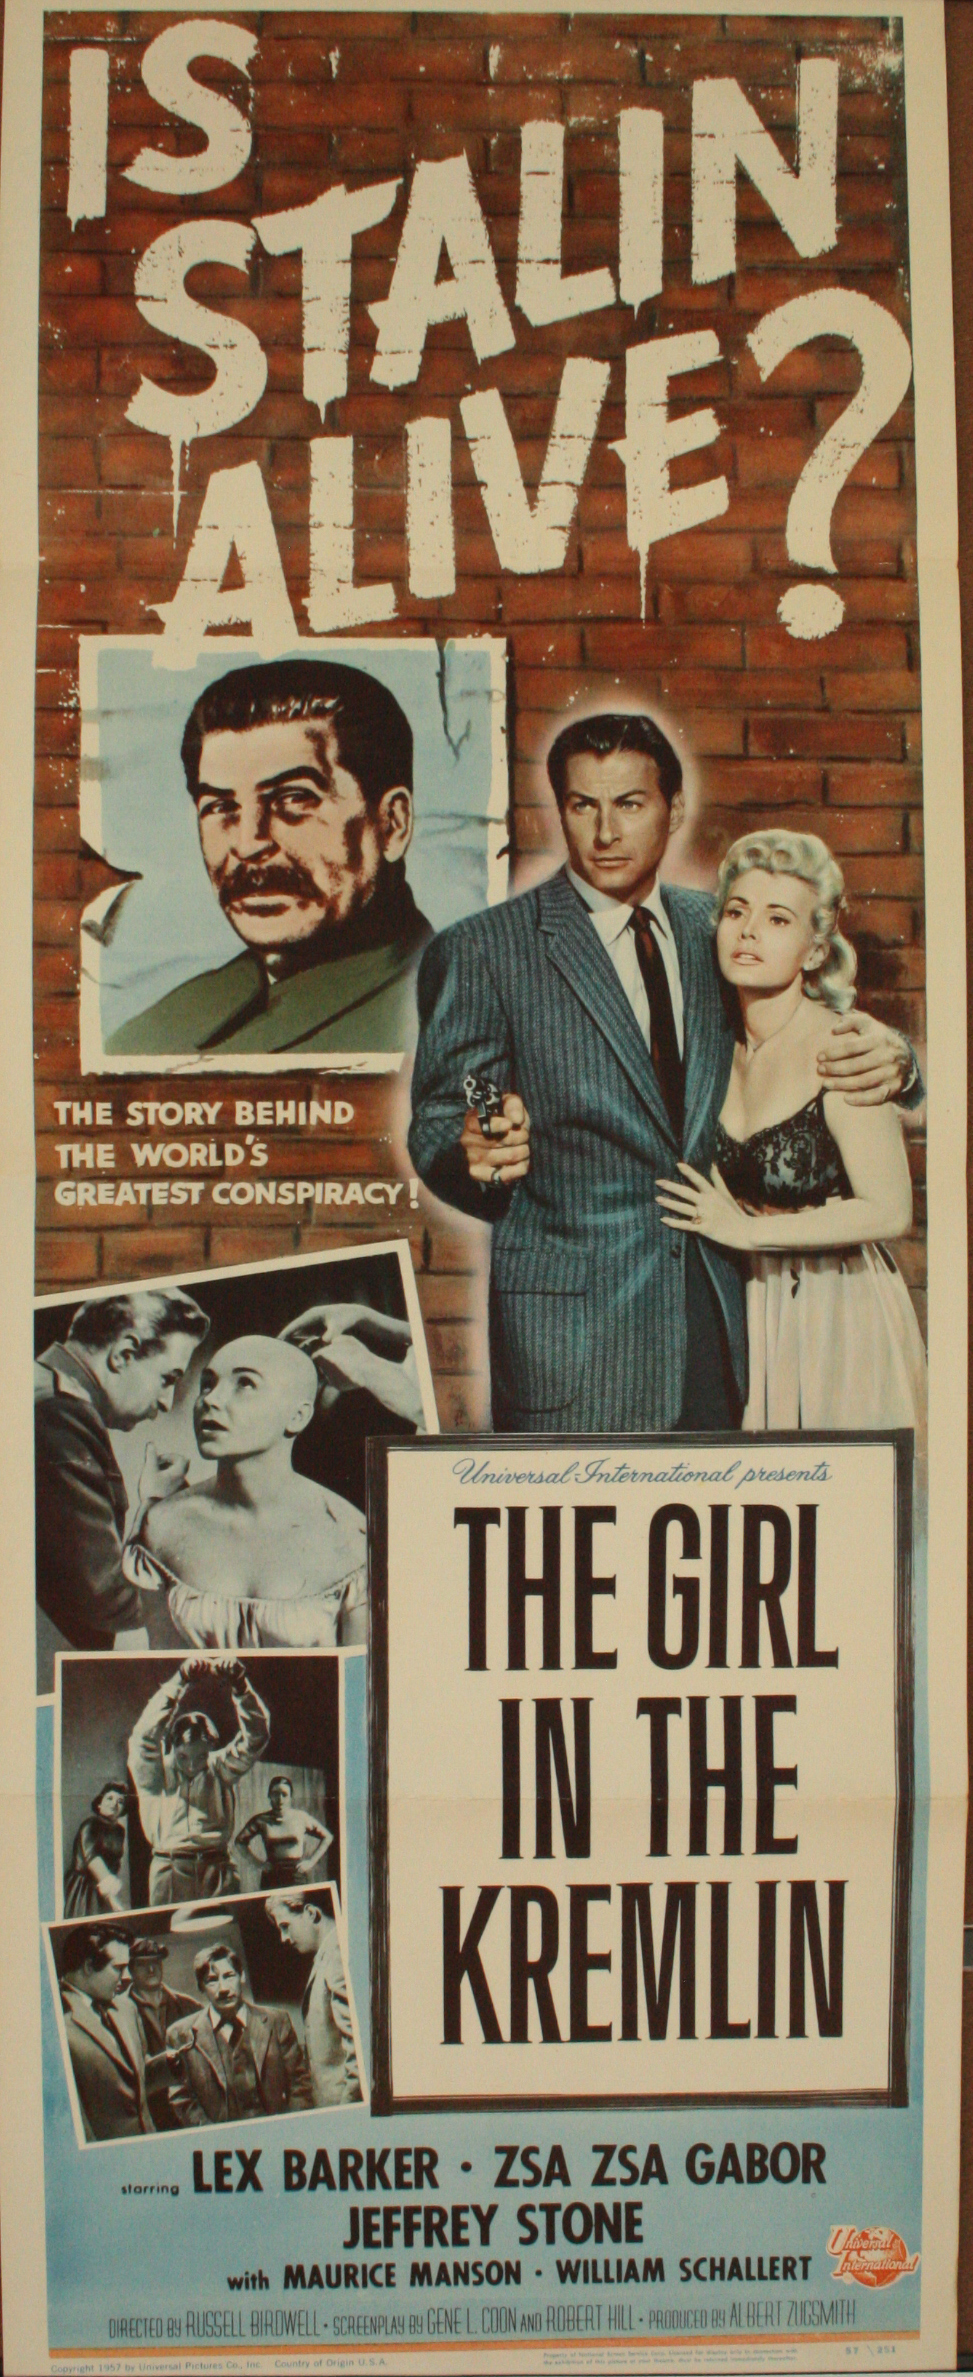 Image result for image of movie girl in the kremlin